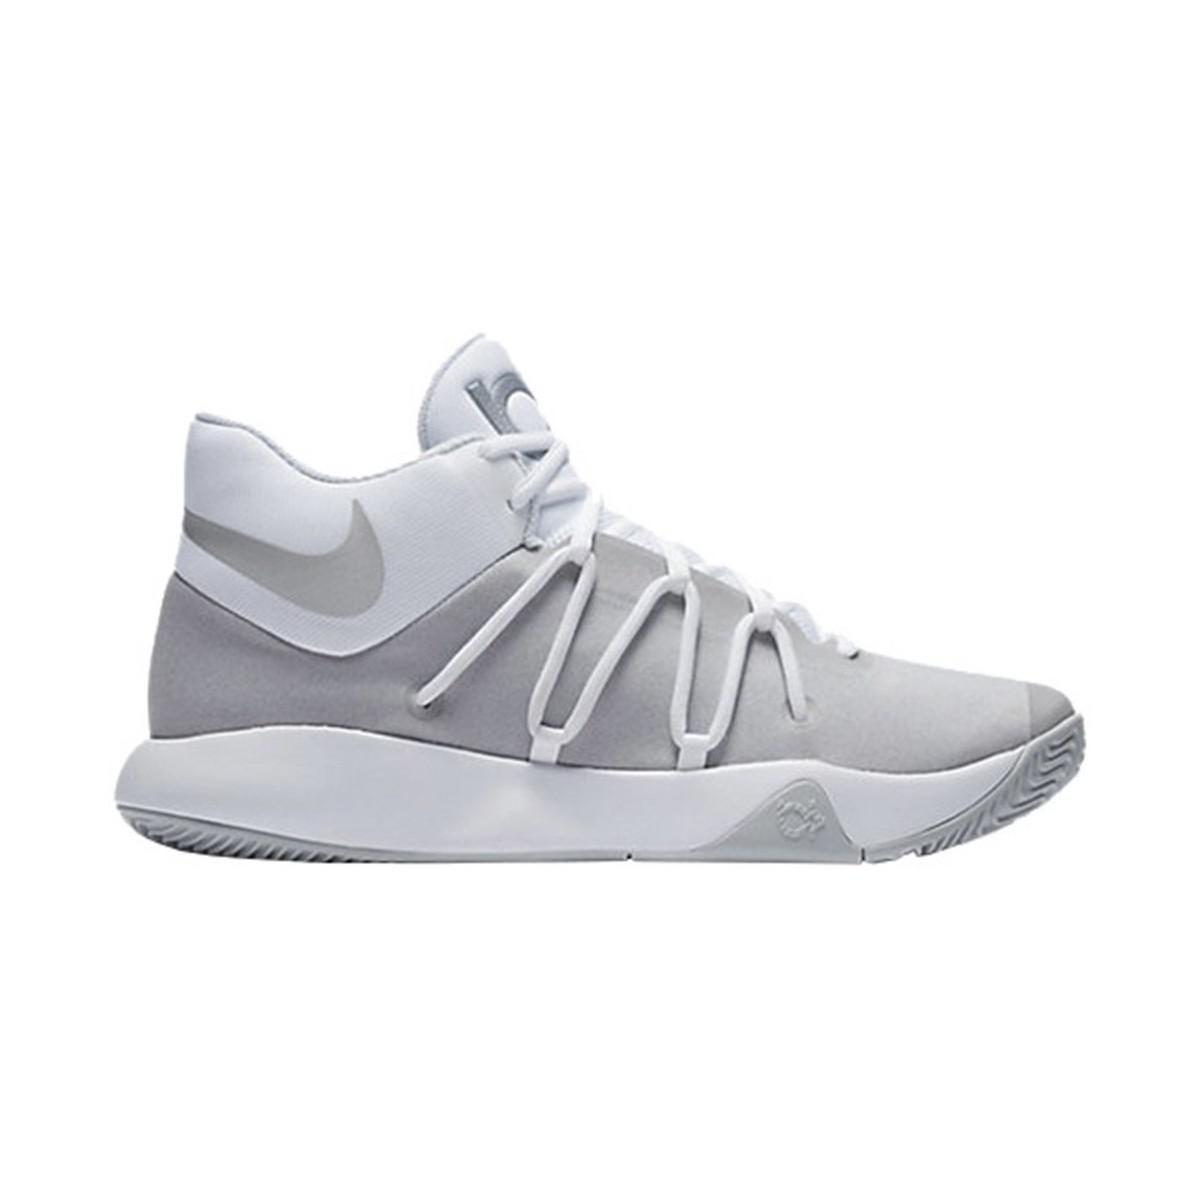 super popular 0378a dfde6 Nike Kd Trey 5 V Men s Shoes (high-top Trainers) In White in White ...